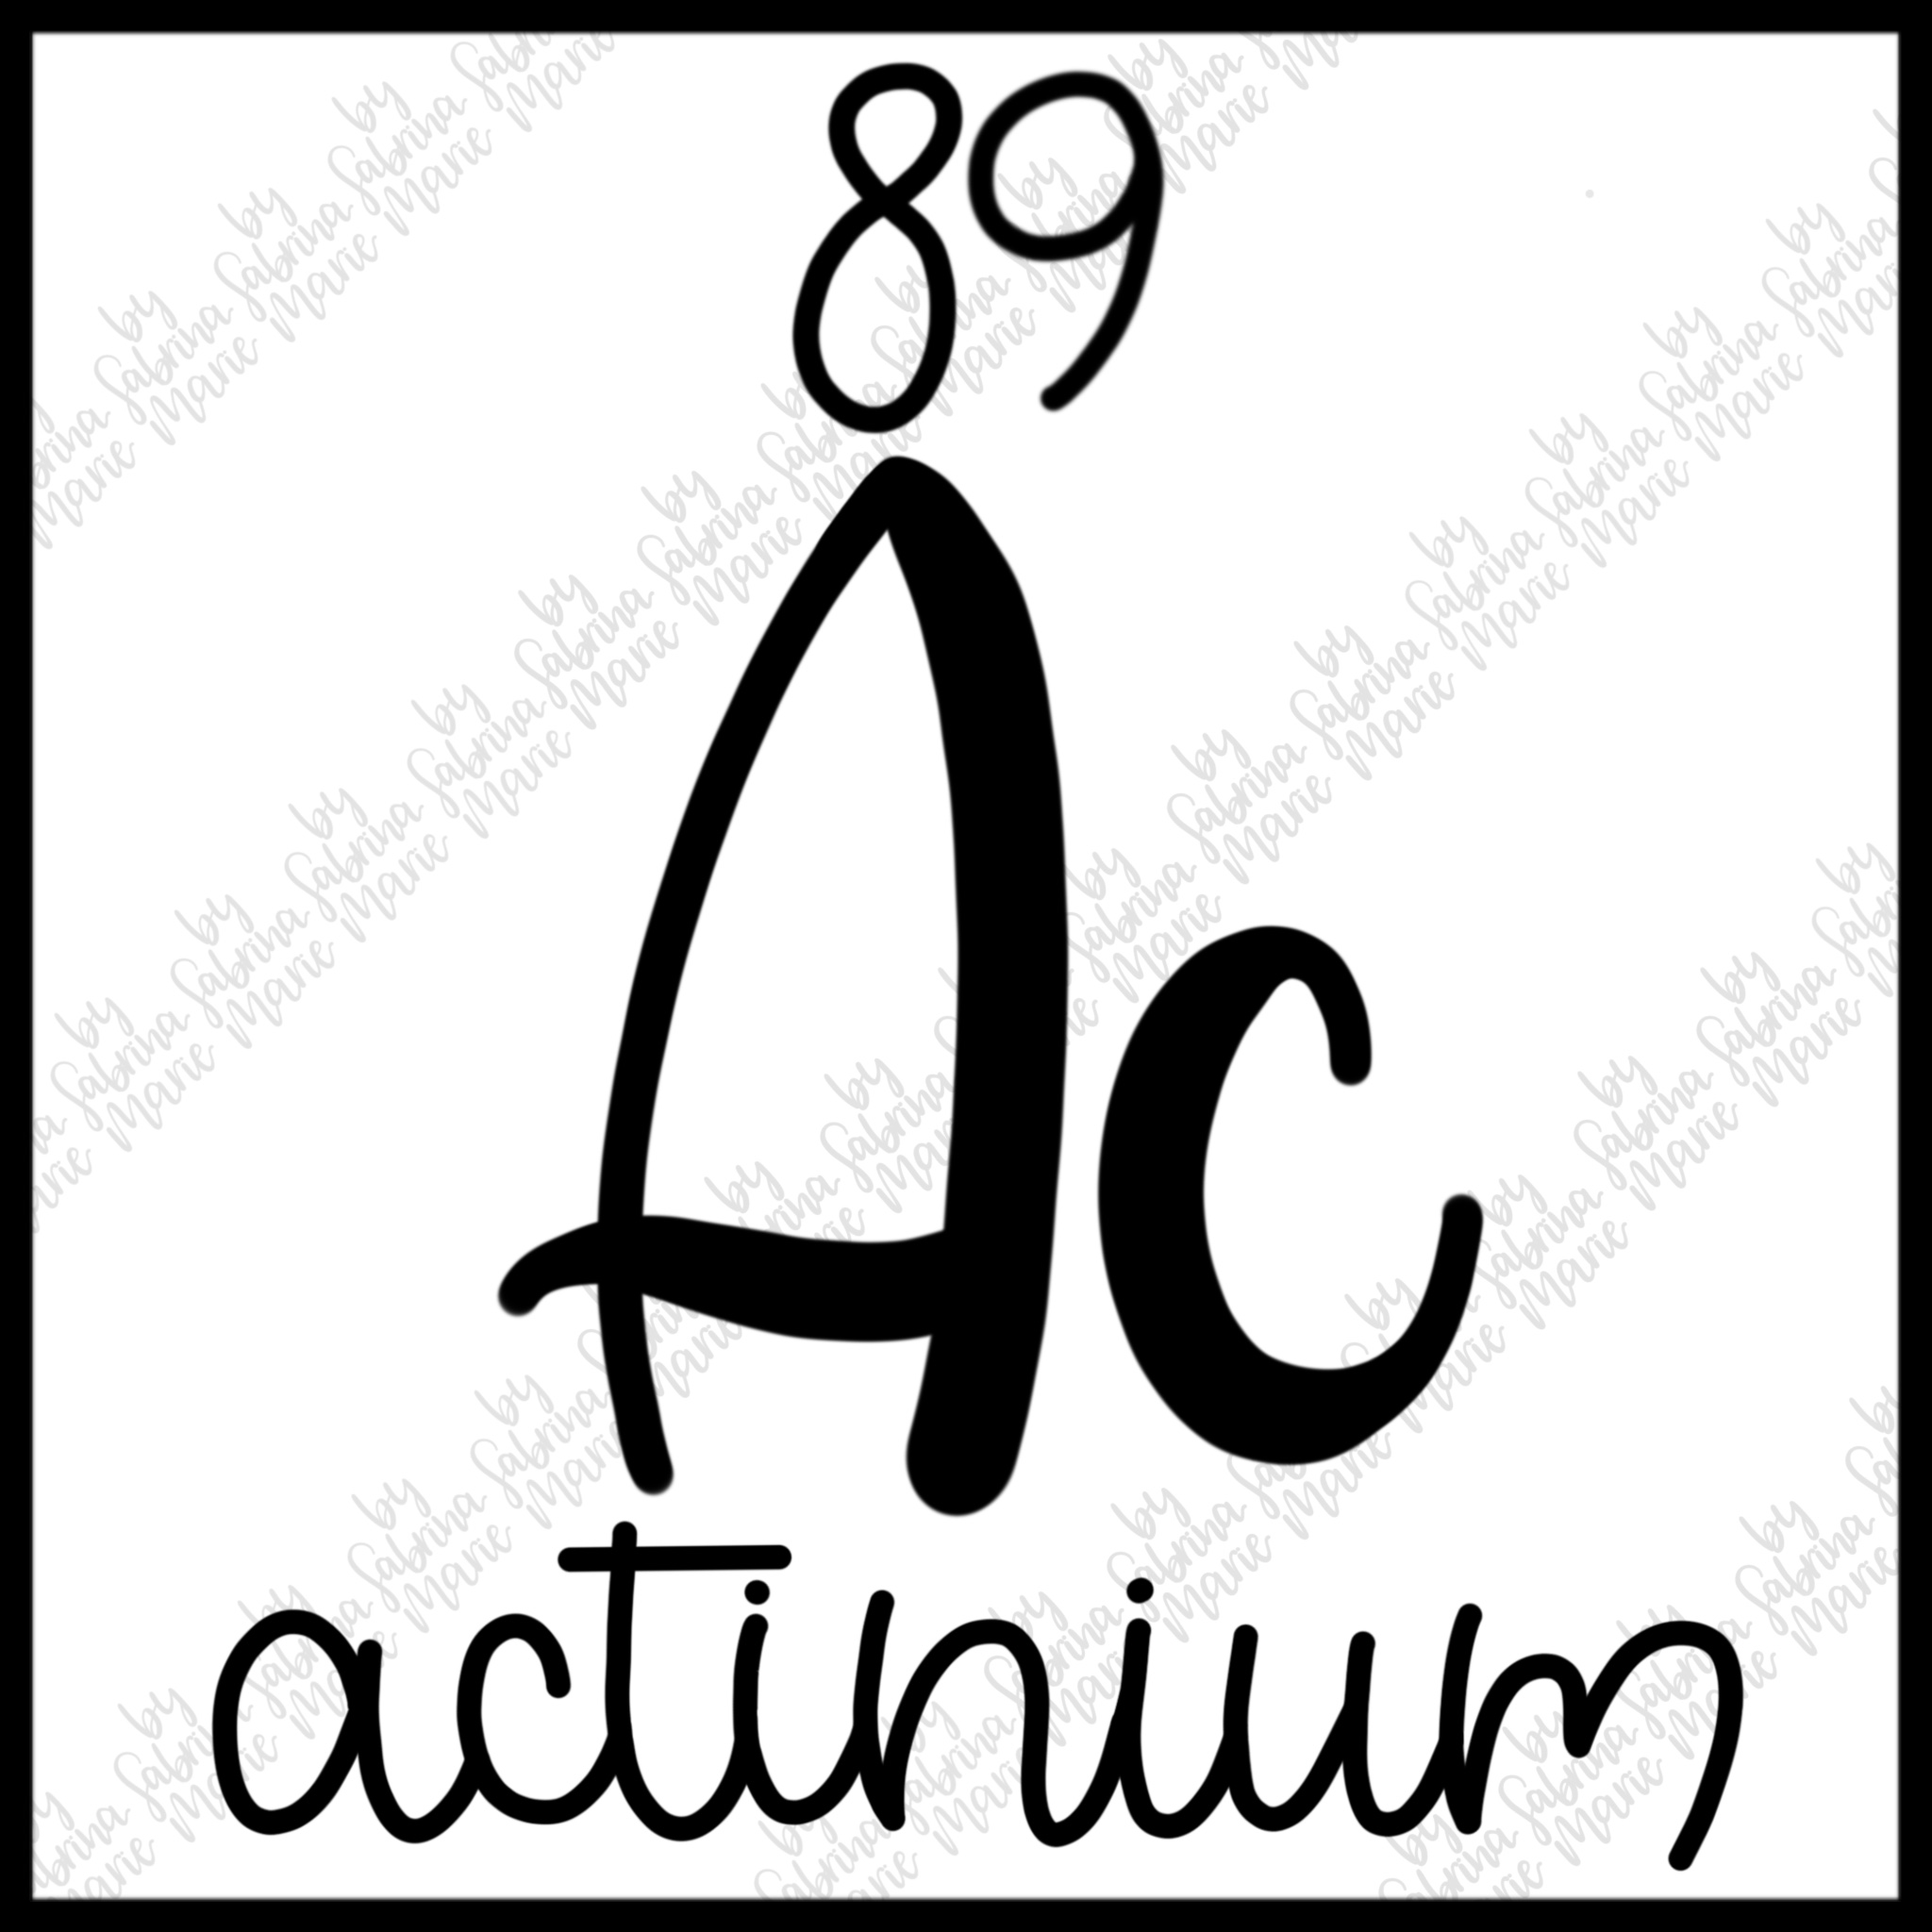 89 Actinium - Handdrawn Periodic Table Element - SVGPNG